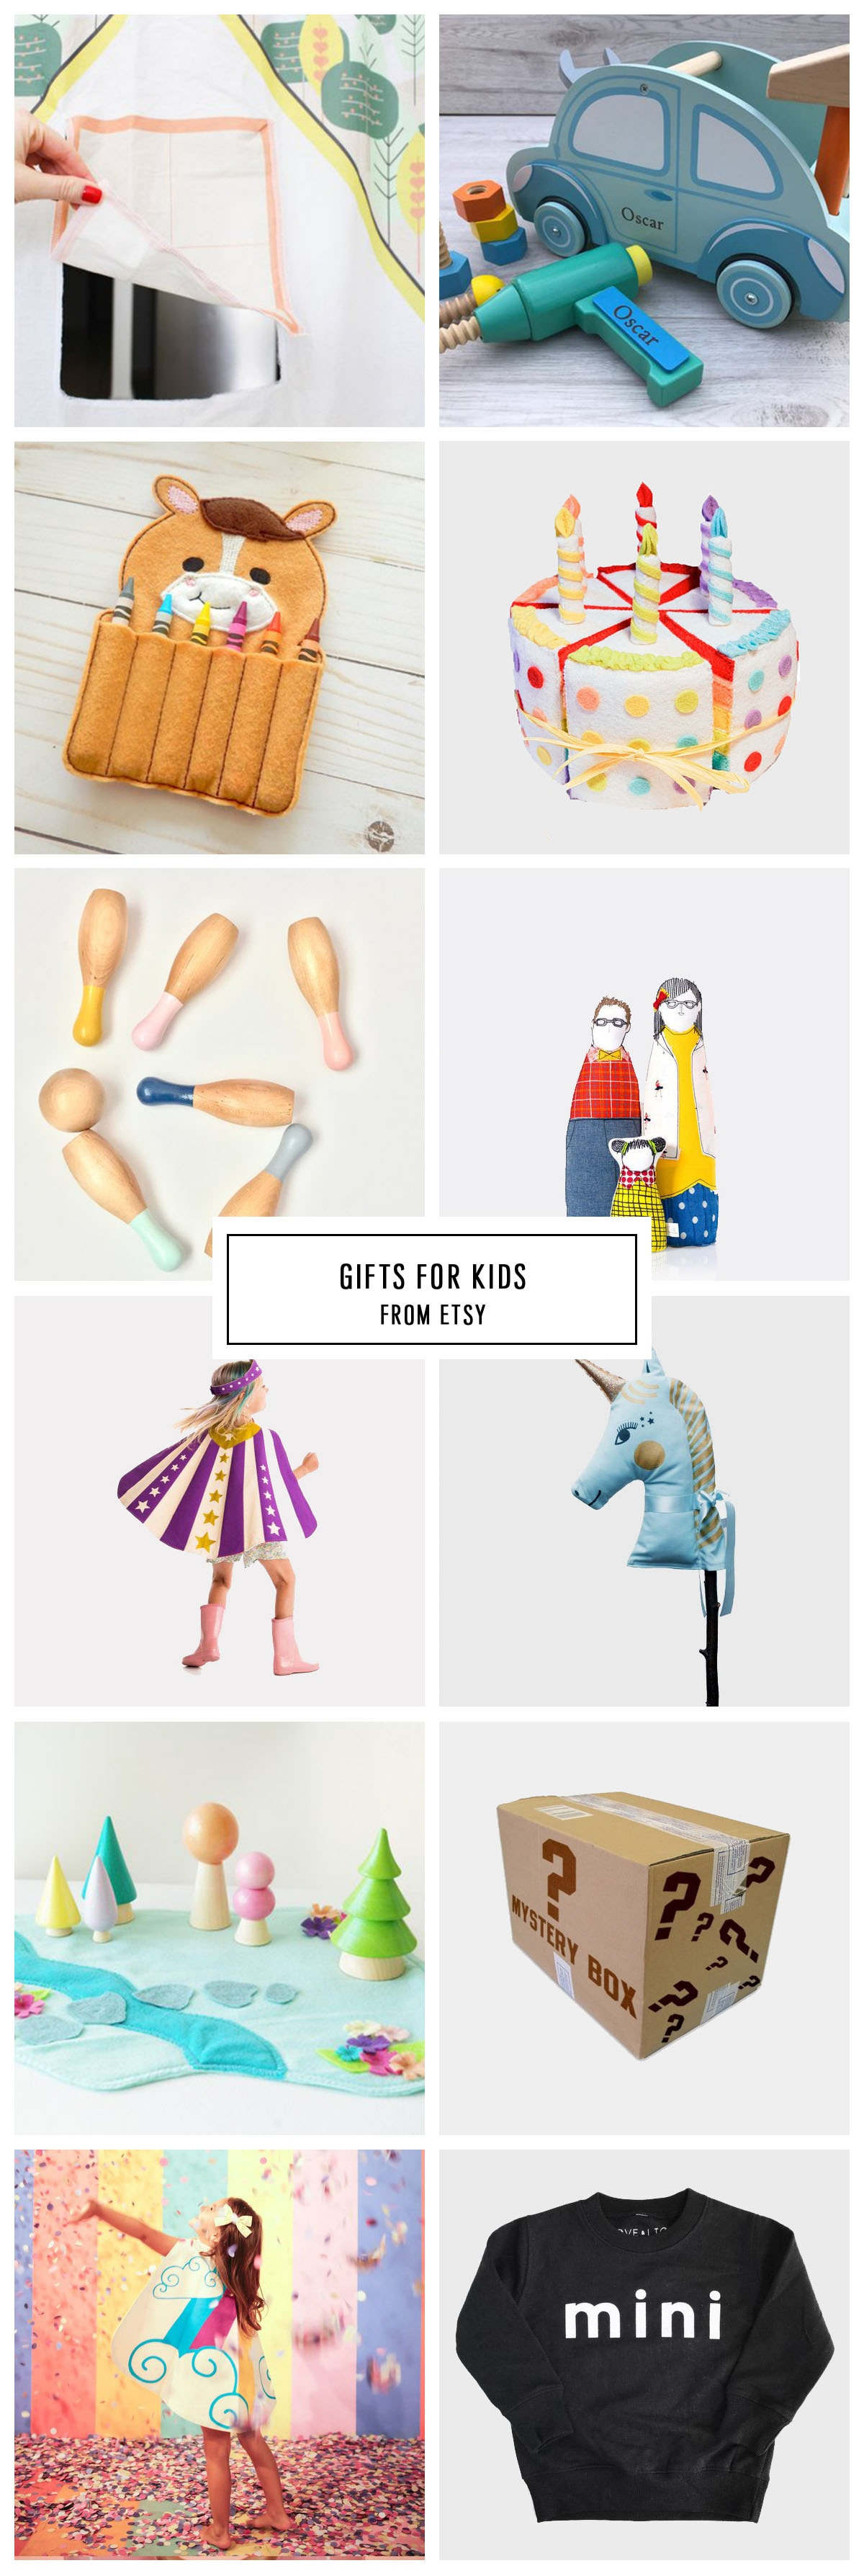 COMPLETE ETSY GIFT GUIDE FOR KIDS UNDER $75 by Houston lifestyle blogger Ashley Rose of Sugar and Cloth -- #giftguide #christmas #entertaining #holidaygifts #presents